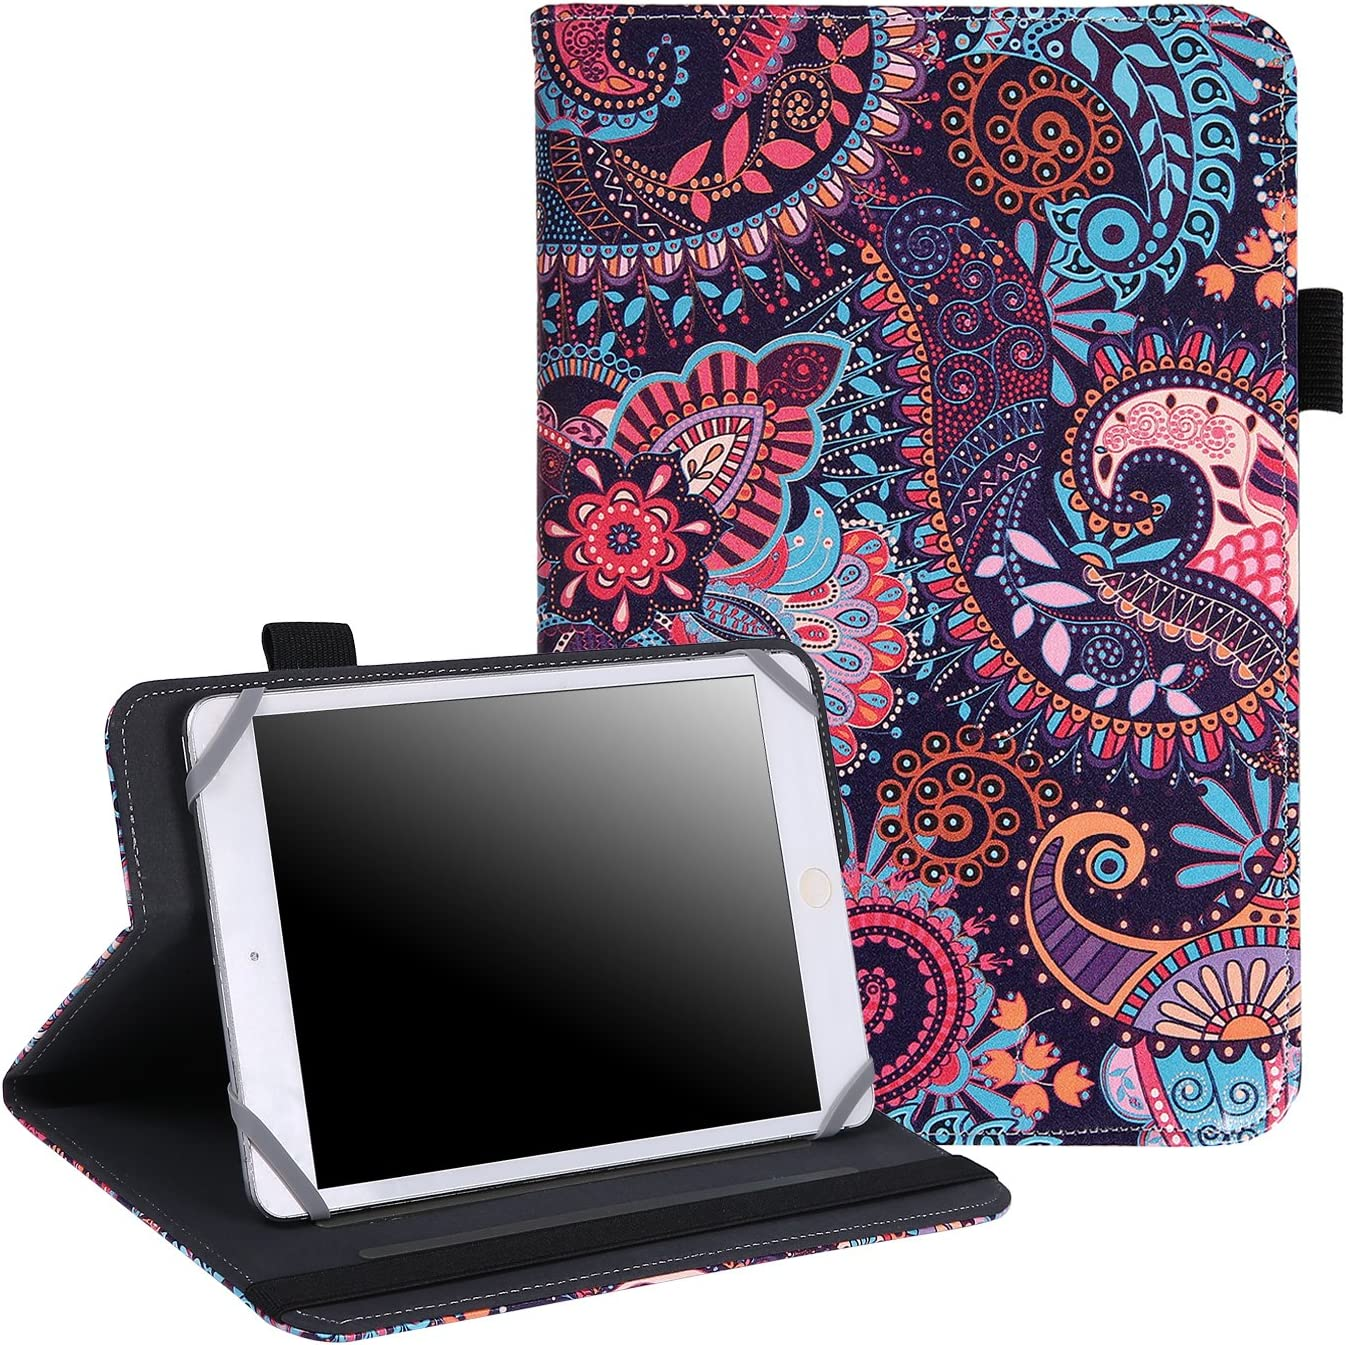 "7"" - 8"" Inch Tablet Case - Universal Folio Cover Protective Stand for Touchscreen Tablets Including Ipad Min and many more (Purple Paisley)"